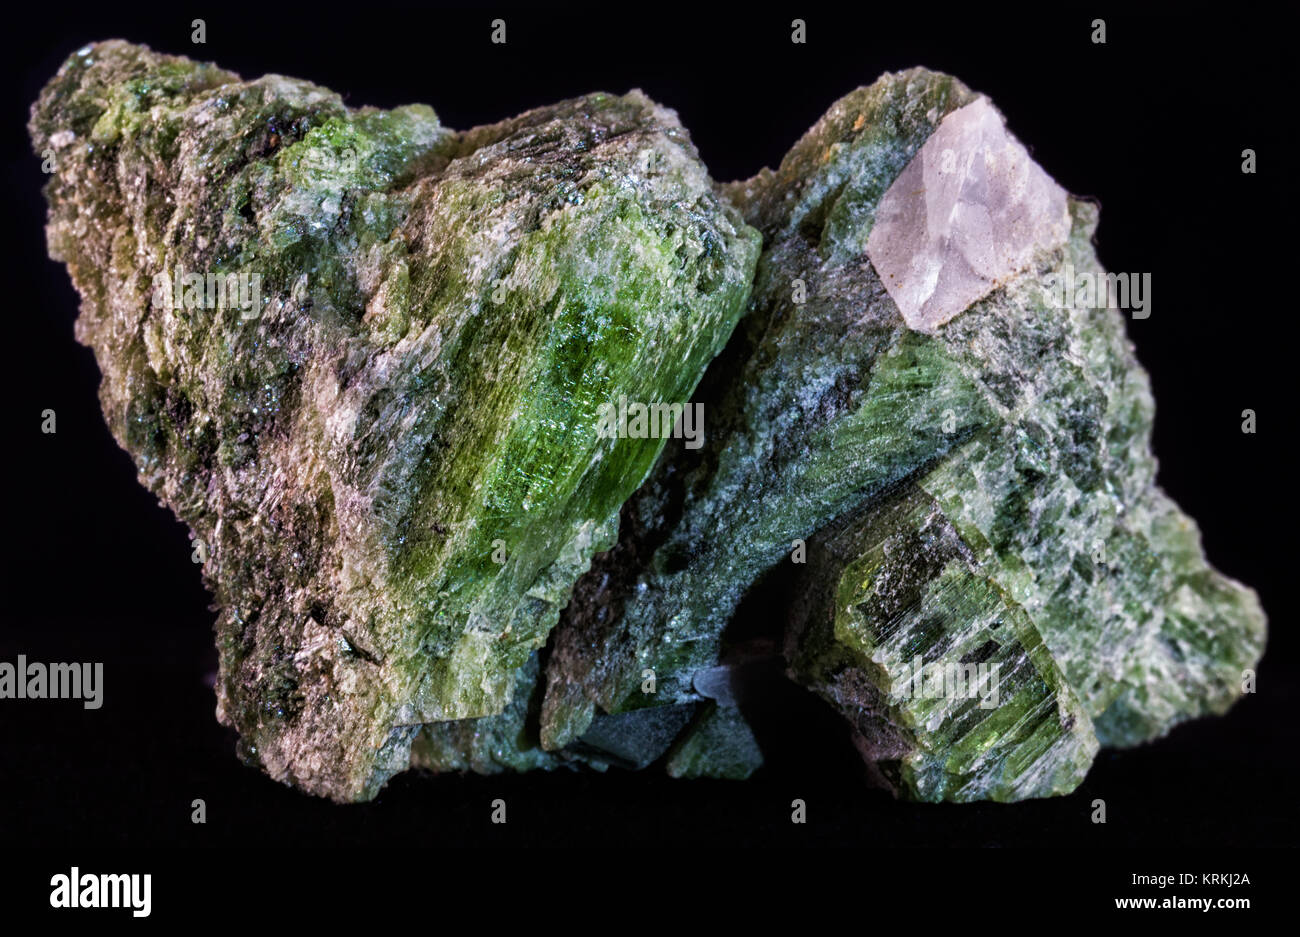 Calcium Silicate Crystal : Diopside stock photos images alamy